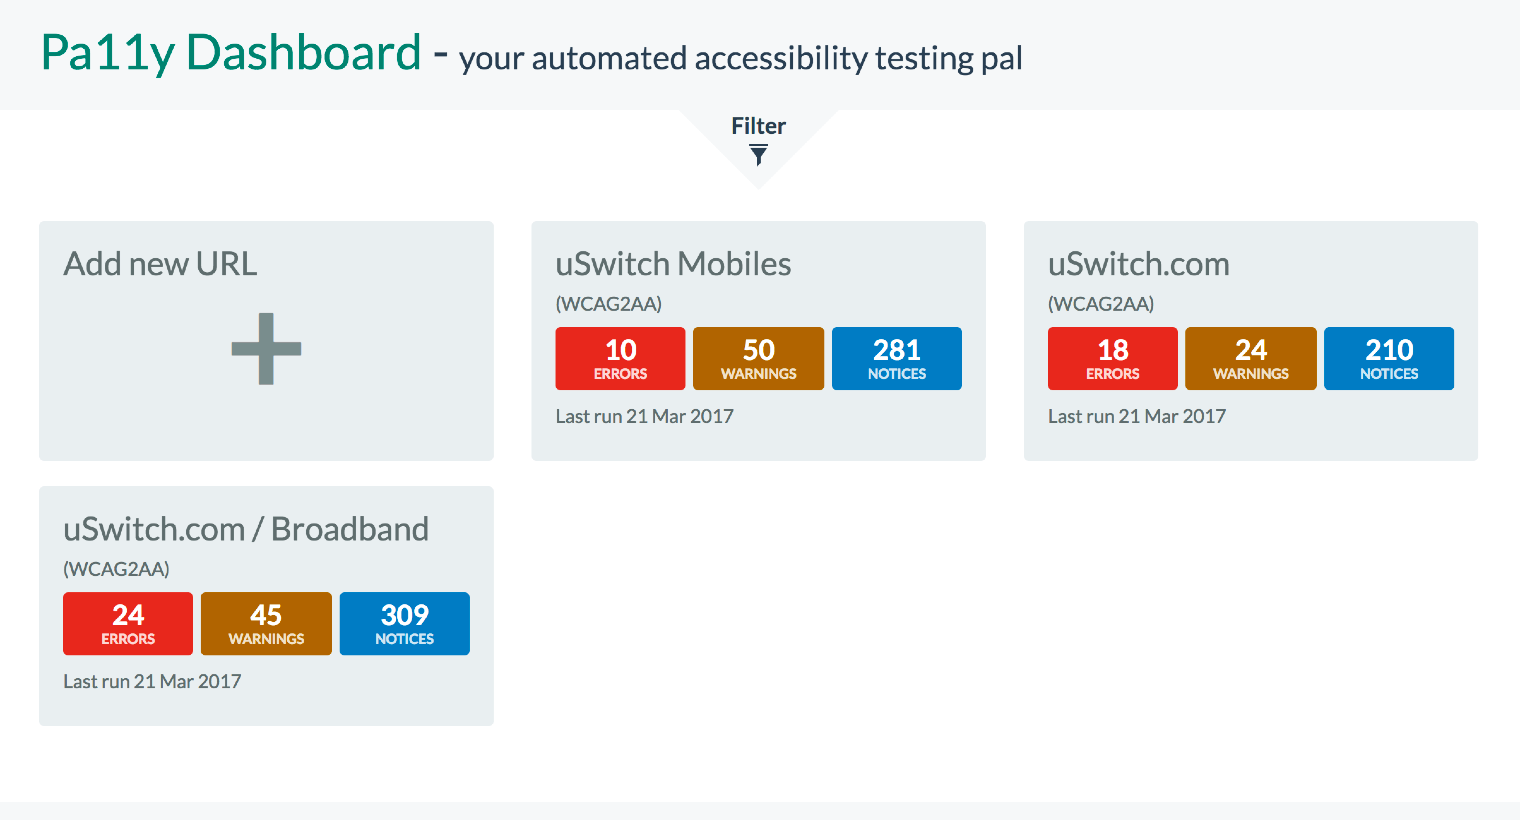 Our accessibility dashboard